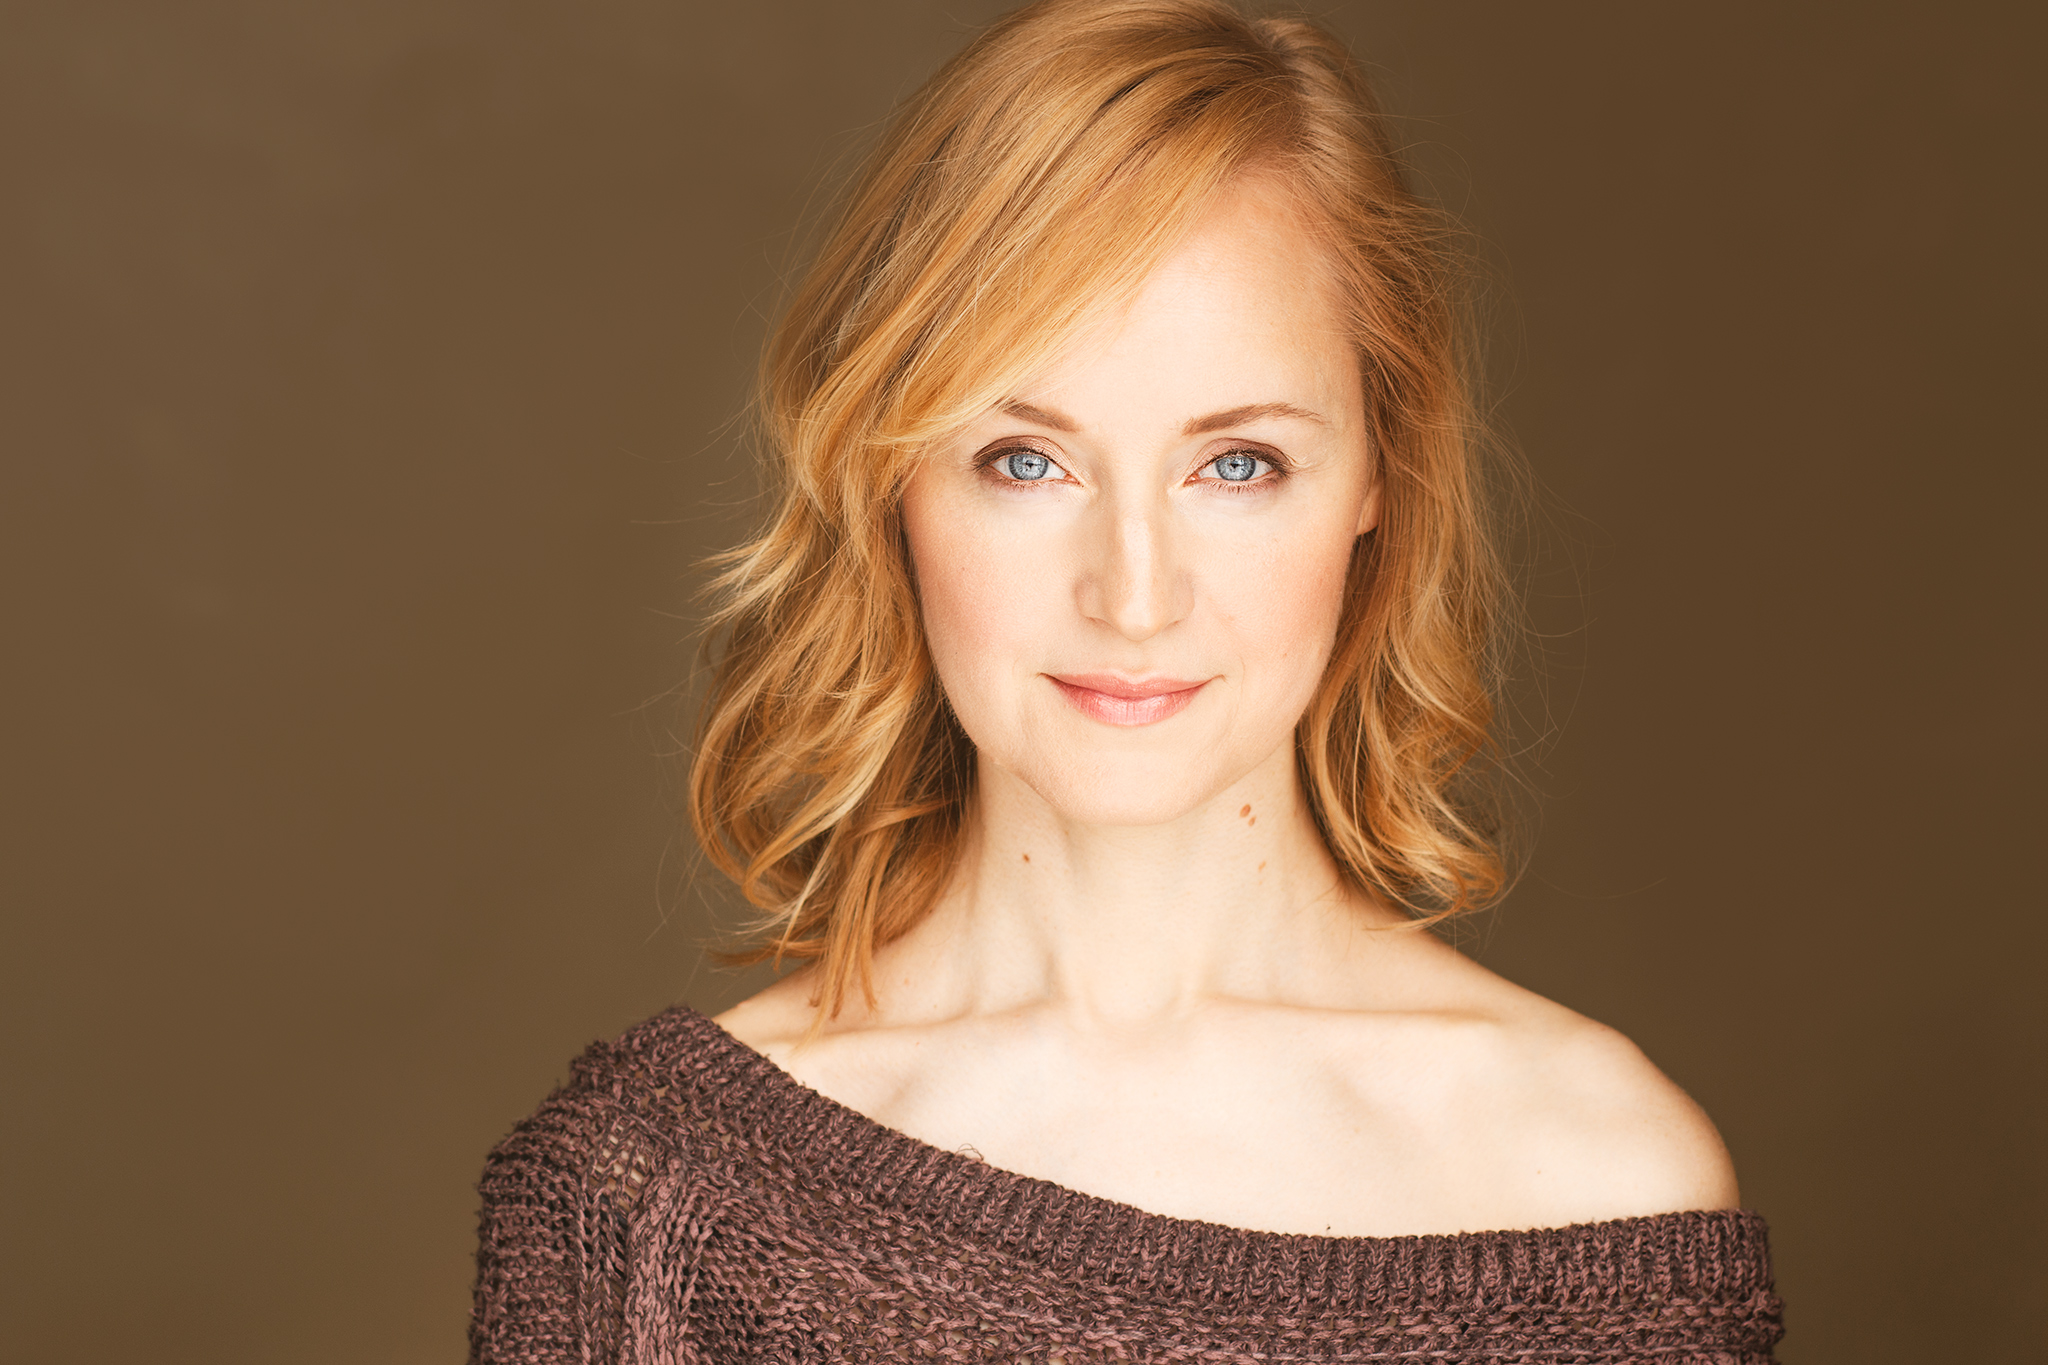 ERIN DAVIE   Drama Desk Award Nominee  Broadway: Sunday in the Park w. George , Side Show, Grey Gardens, A Little Night Music, Edwin Drood, and more.  Film/TV: King Jack, Orange Is the New Black